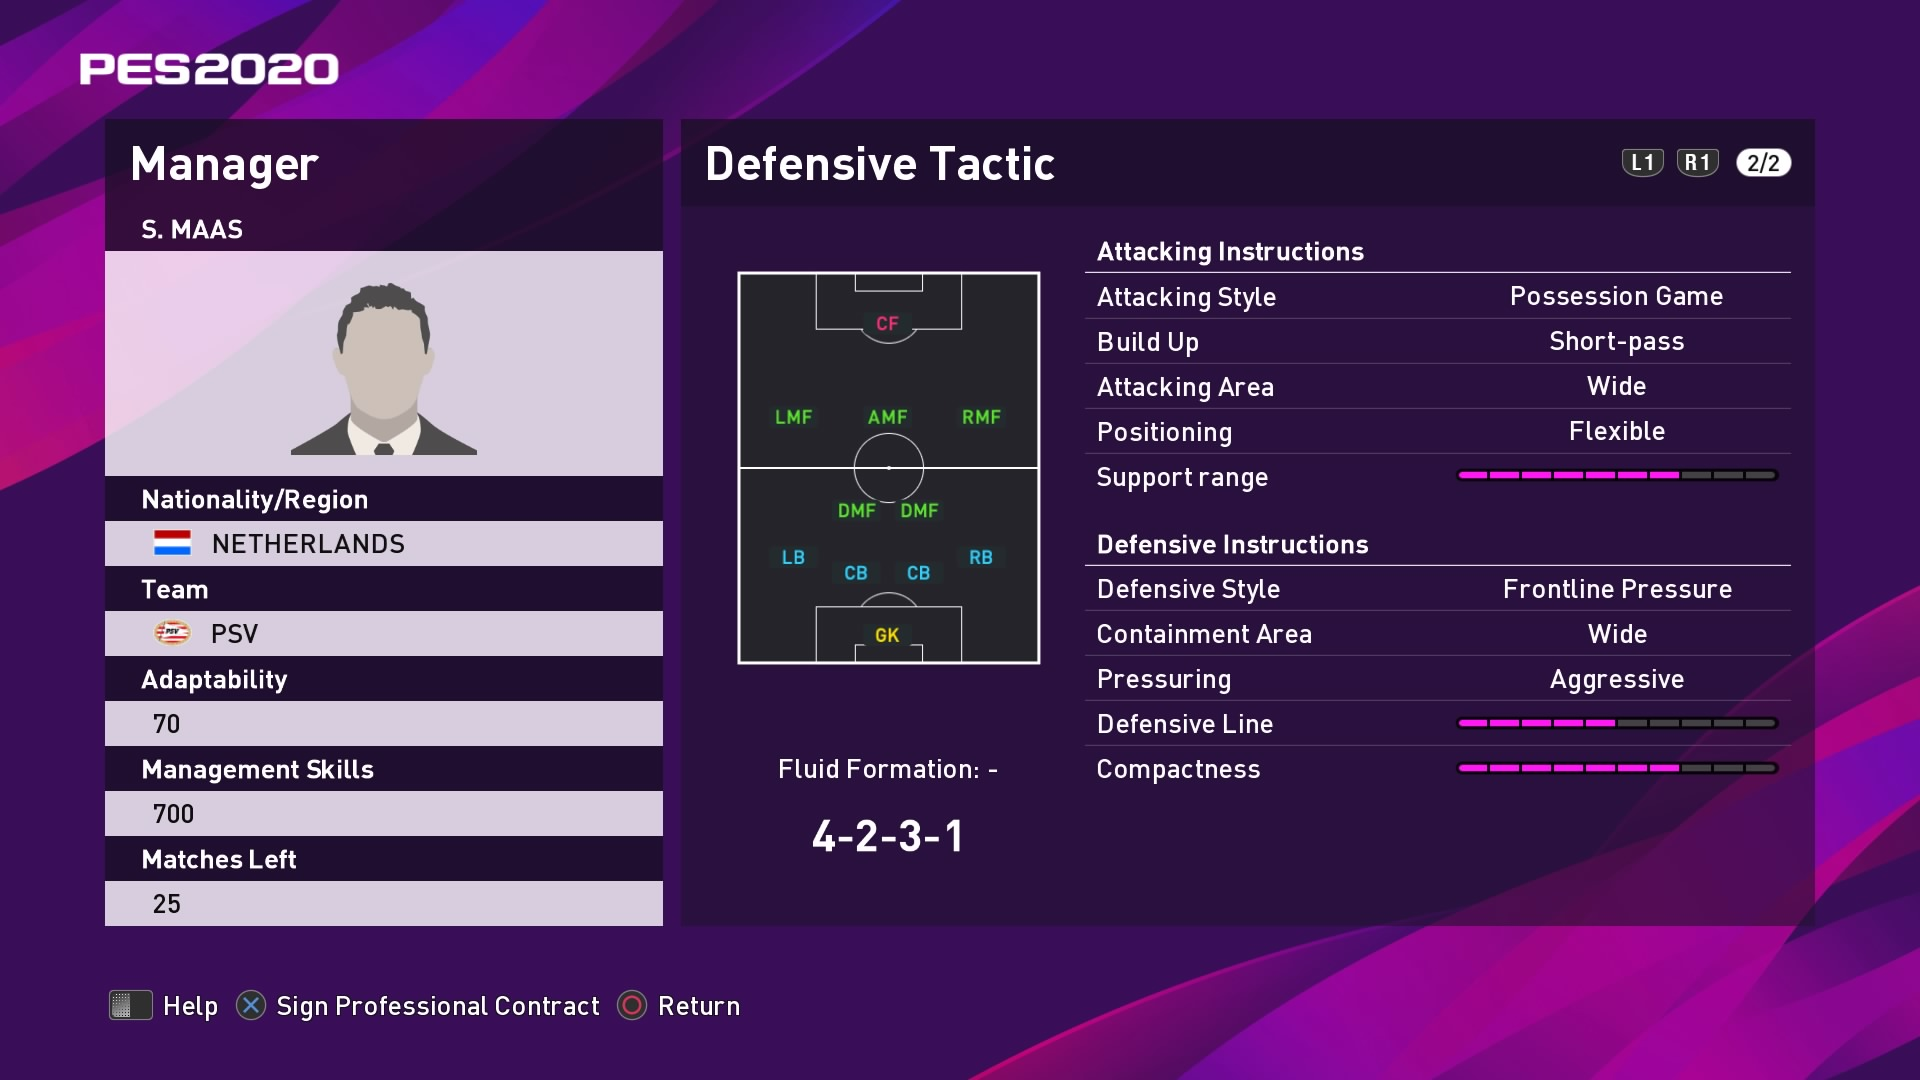 S. Maas (Ernest Faber) Defensive Tactic in PES 2020 myClub